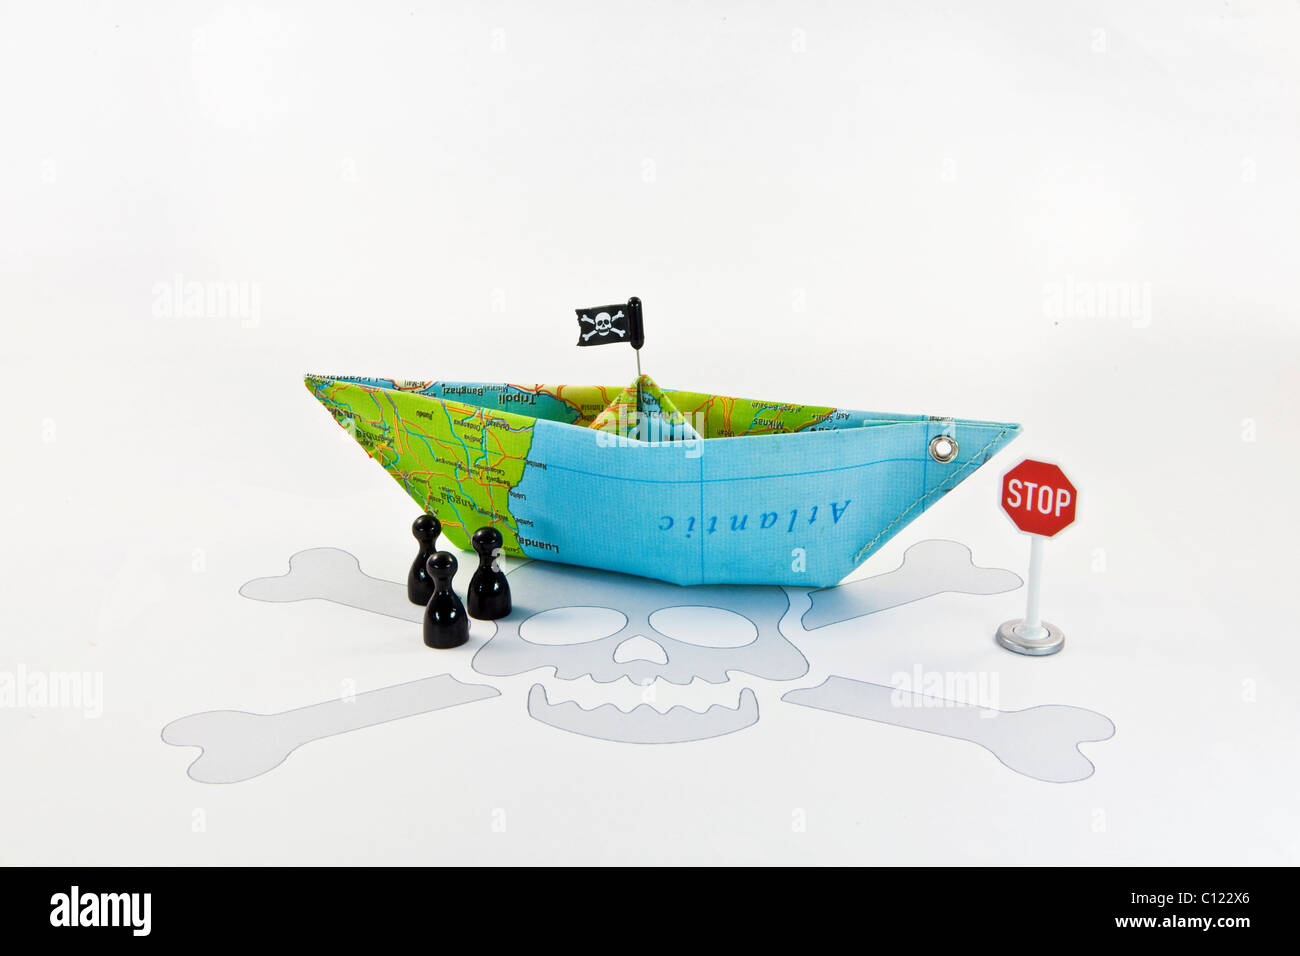 Pirate ship, symbolic image for stopping piracy - Stock Image